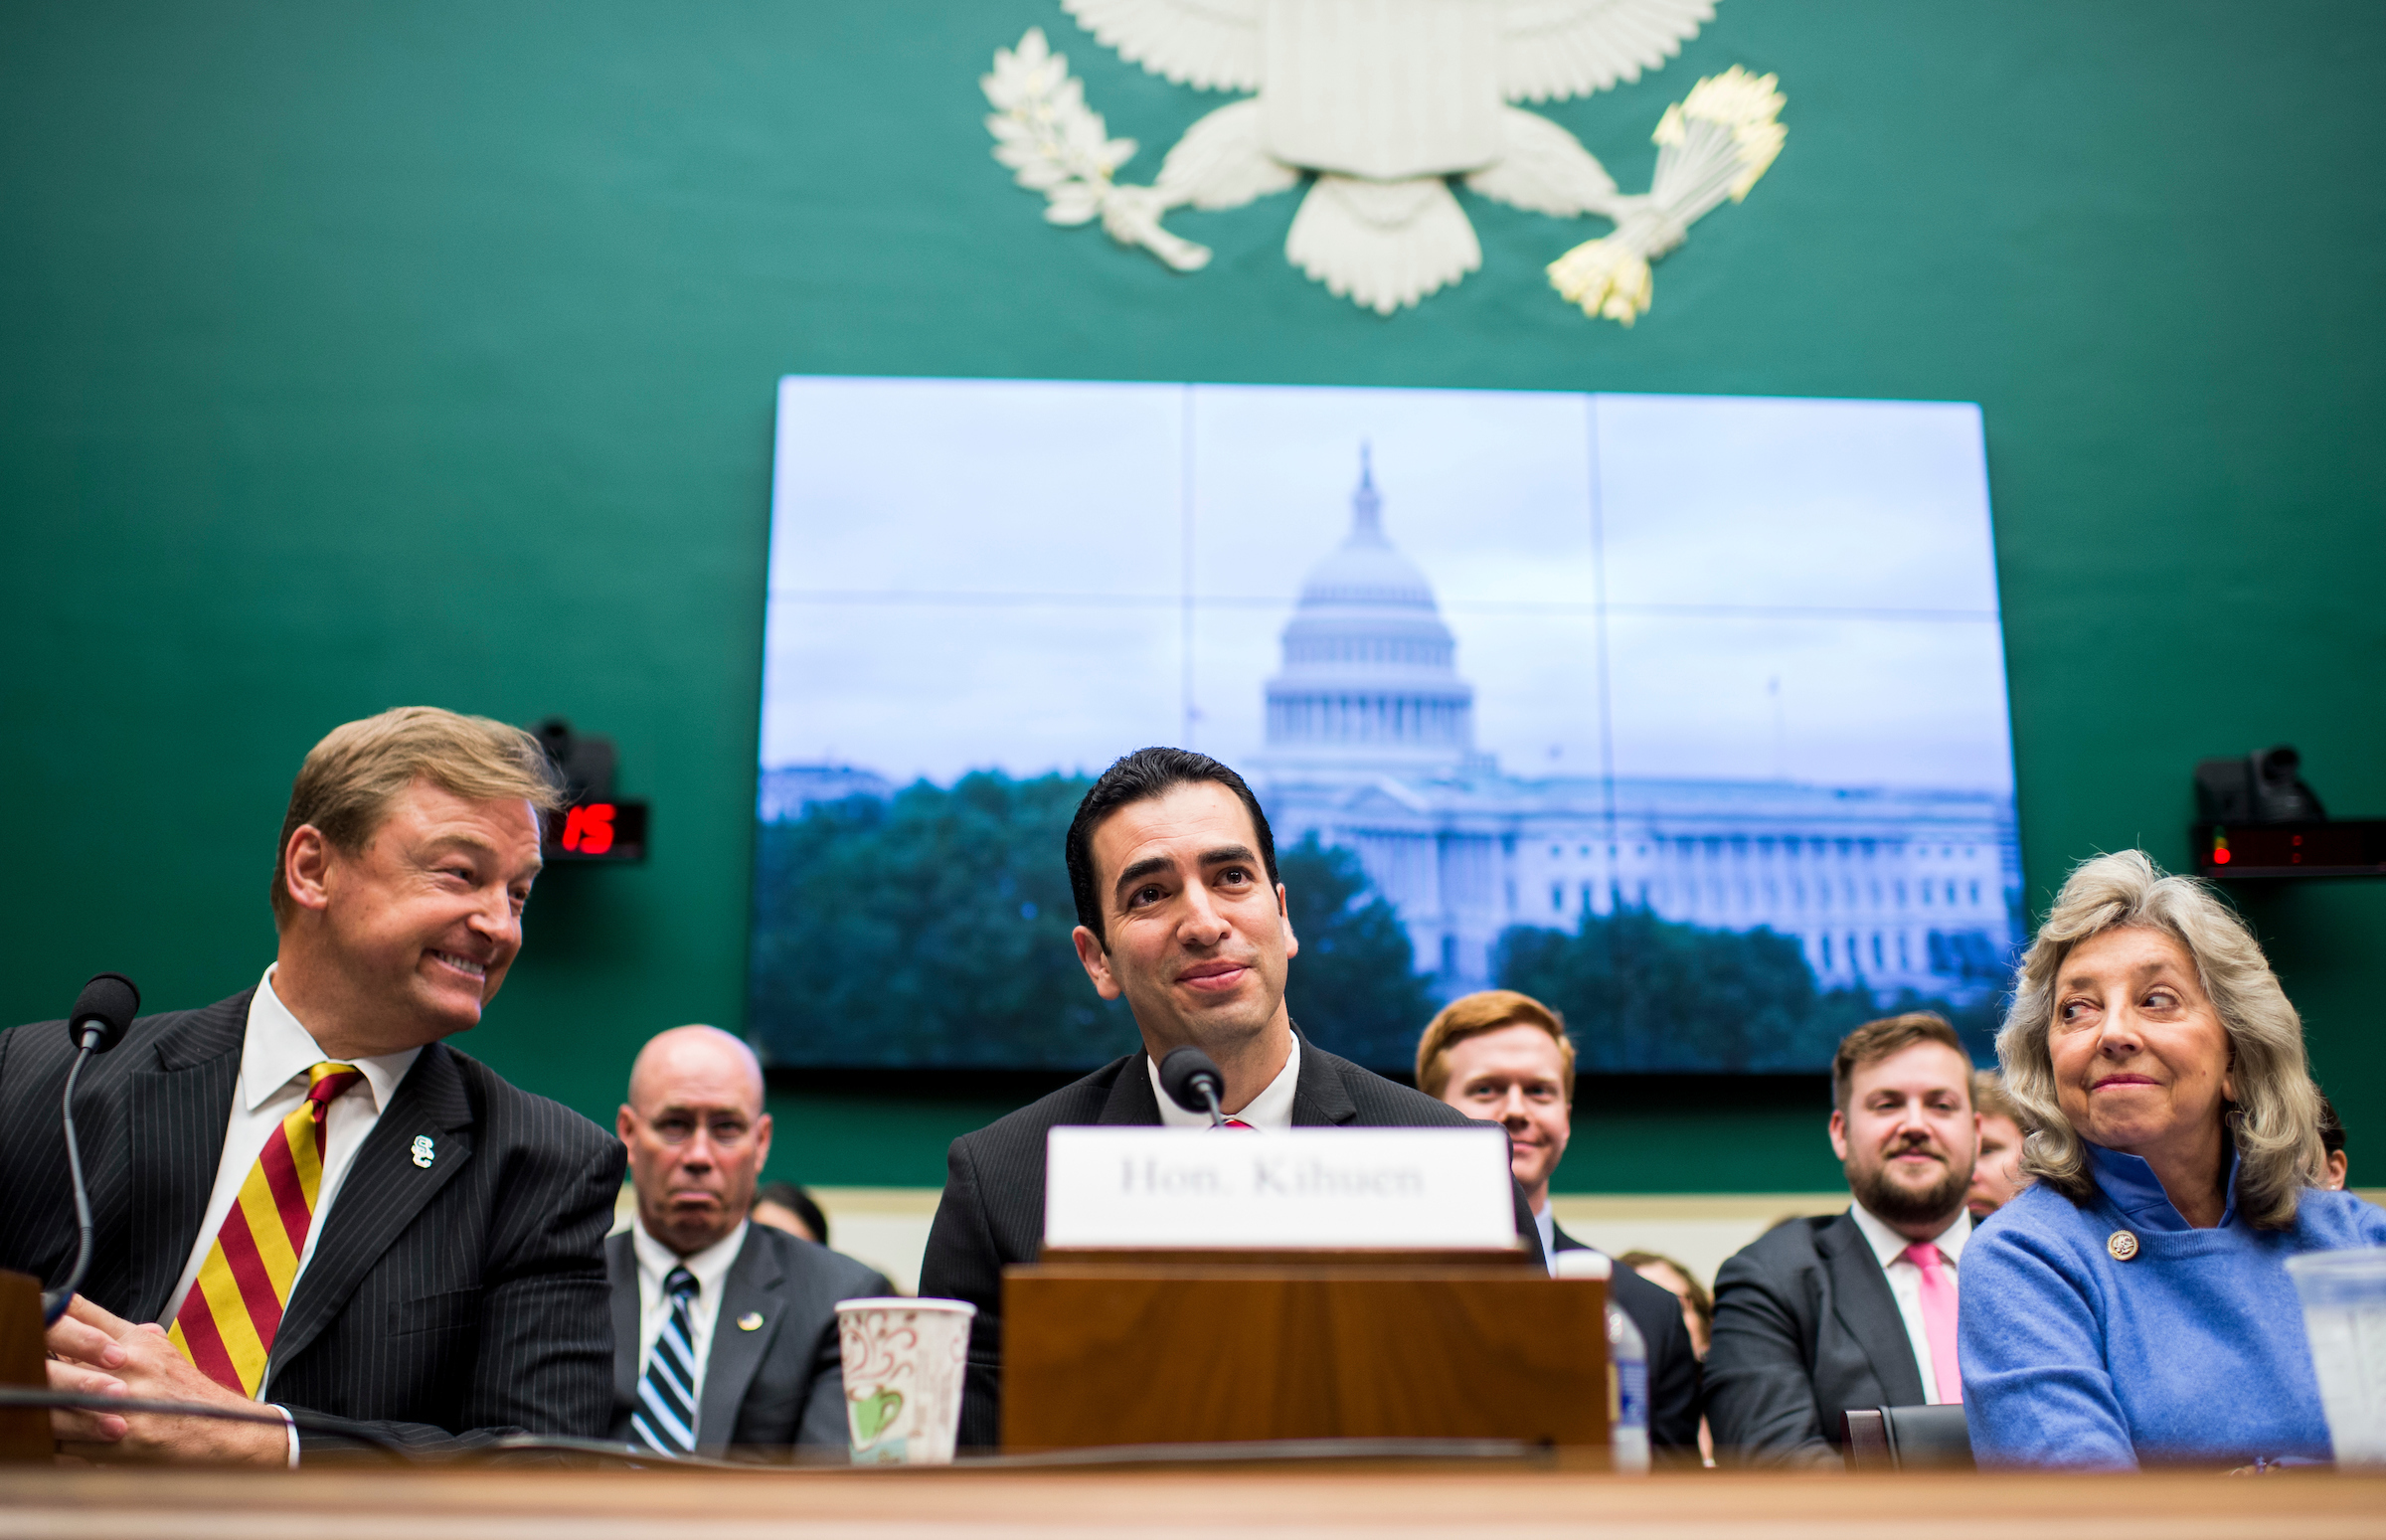 "UNITED STATES - APRIL 26: From left, Sen. Dean Heller, R-Nev., Rep. Ruben Kihuen, D-Nev., and Rep. Dina Titus, D-Nev., make statements in opposition to using Yucca Mountain as a nuclear waste disposal site during the House Committee on Energy and Commerce Subcommittee on Environment hearing on the ""Nuclear Waste Policy Amendments Act Of 2017"" on Wednesday, April 26, 2017. (Photo By Bill Clark/CQ Roll Call)"